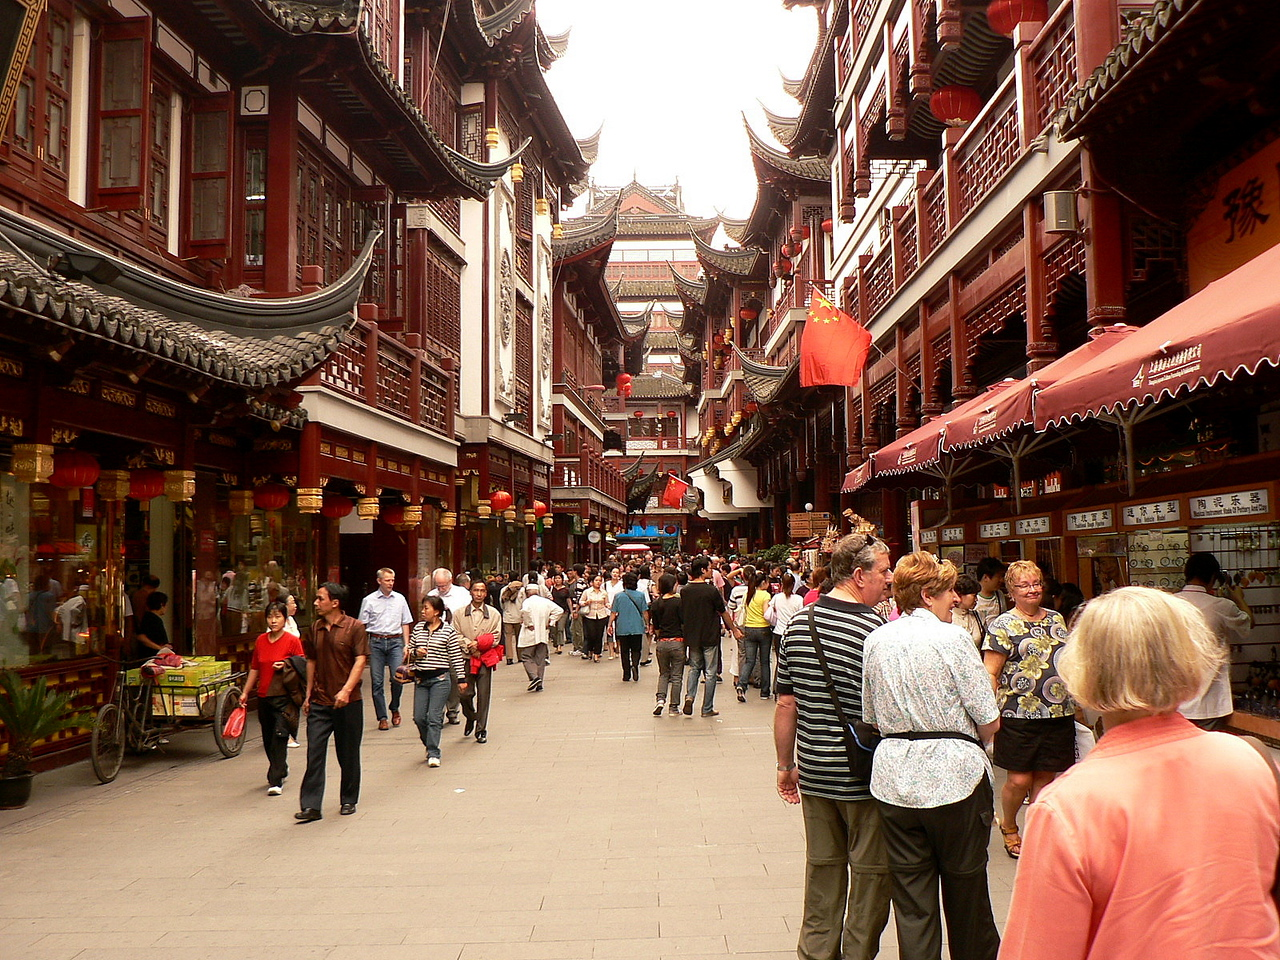 Yuyuan Old Shanghai Shopping district